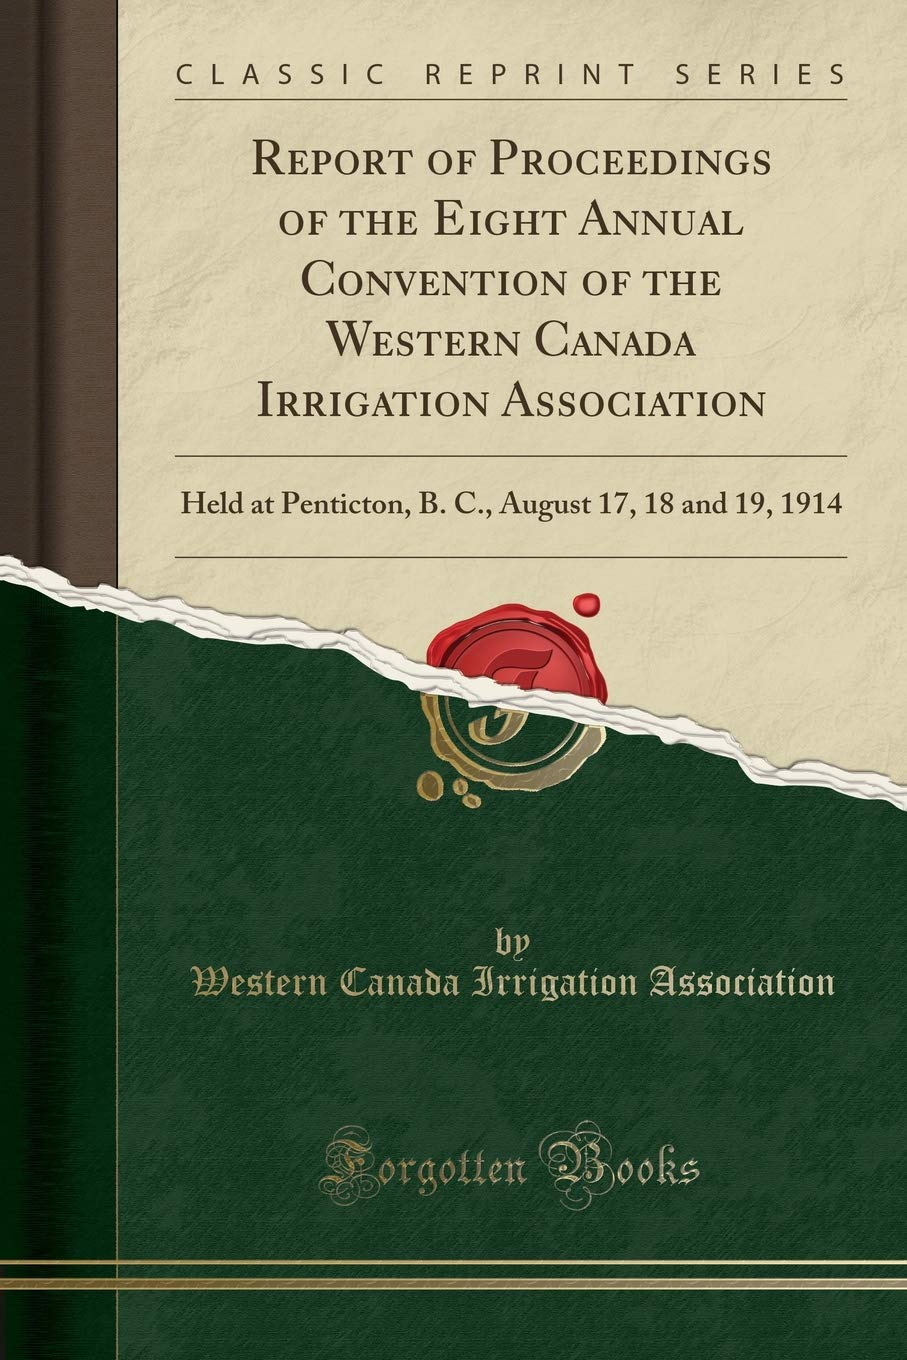 Report of Proceedings of the Eight Annual Convention of the Western Canada Irrigation Association: Held at Penticton, B. C., August 17, 18 and 19, 1914 (Classic Reprint) pdf epub